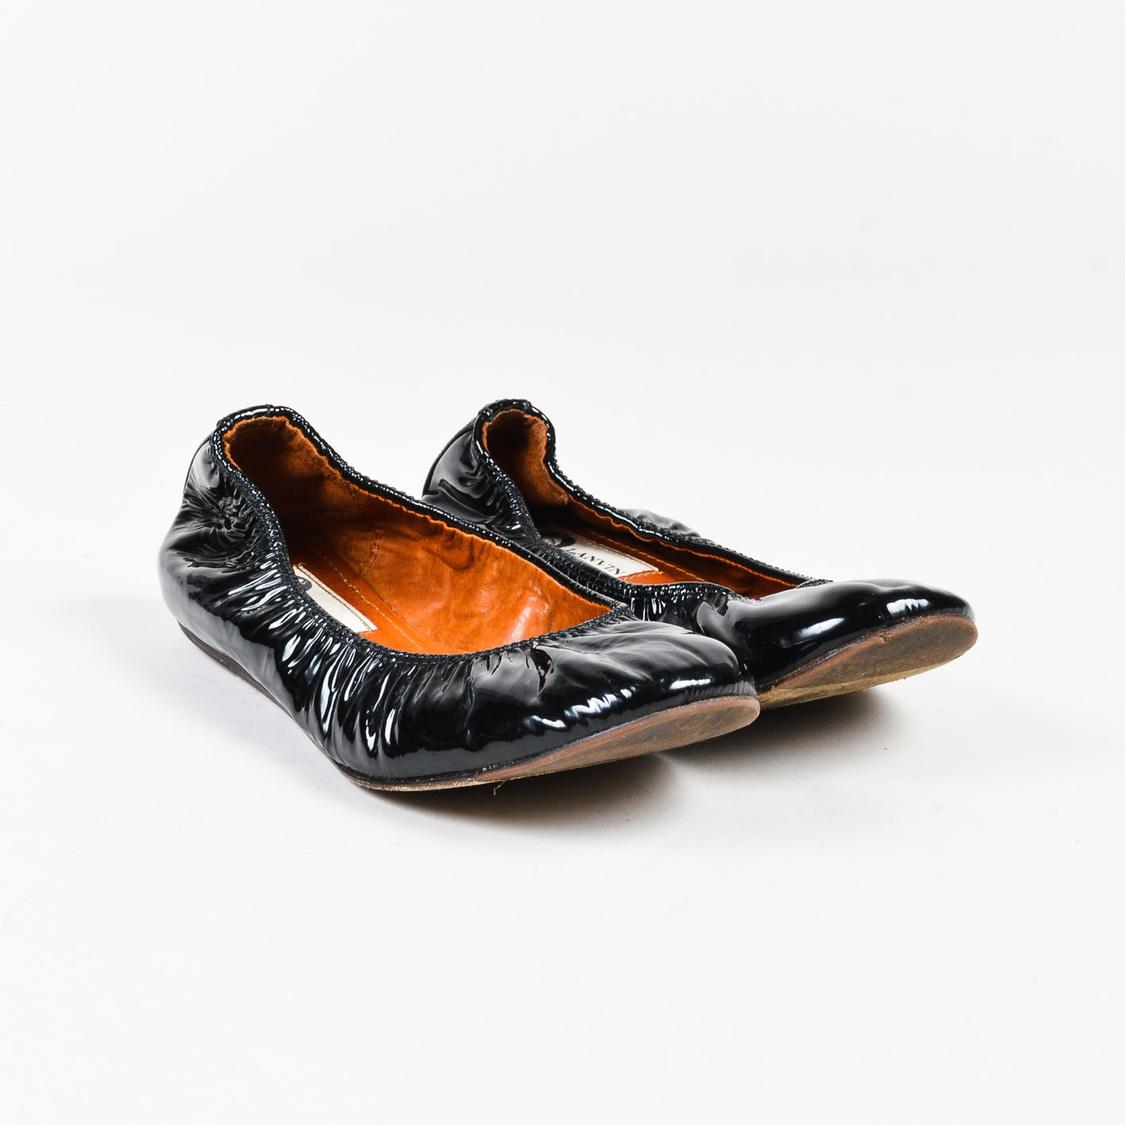 4b207aa2c96c97 Lanvin - Black Patent Leather Ruched Ballet Flats - Lyst. View fullscreen